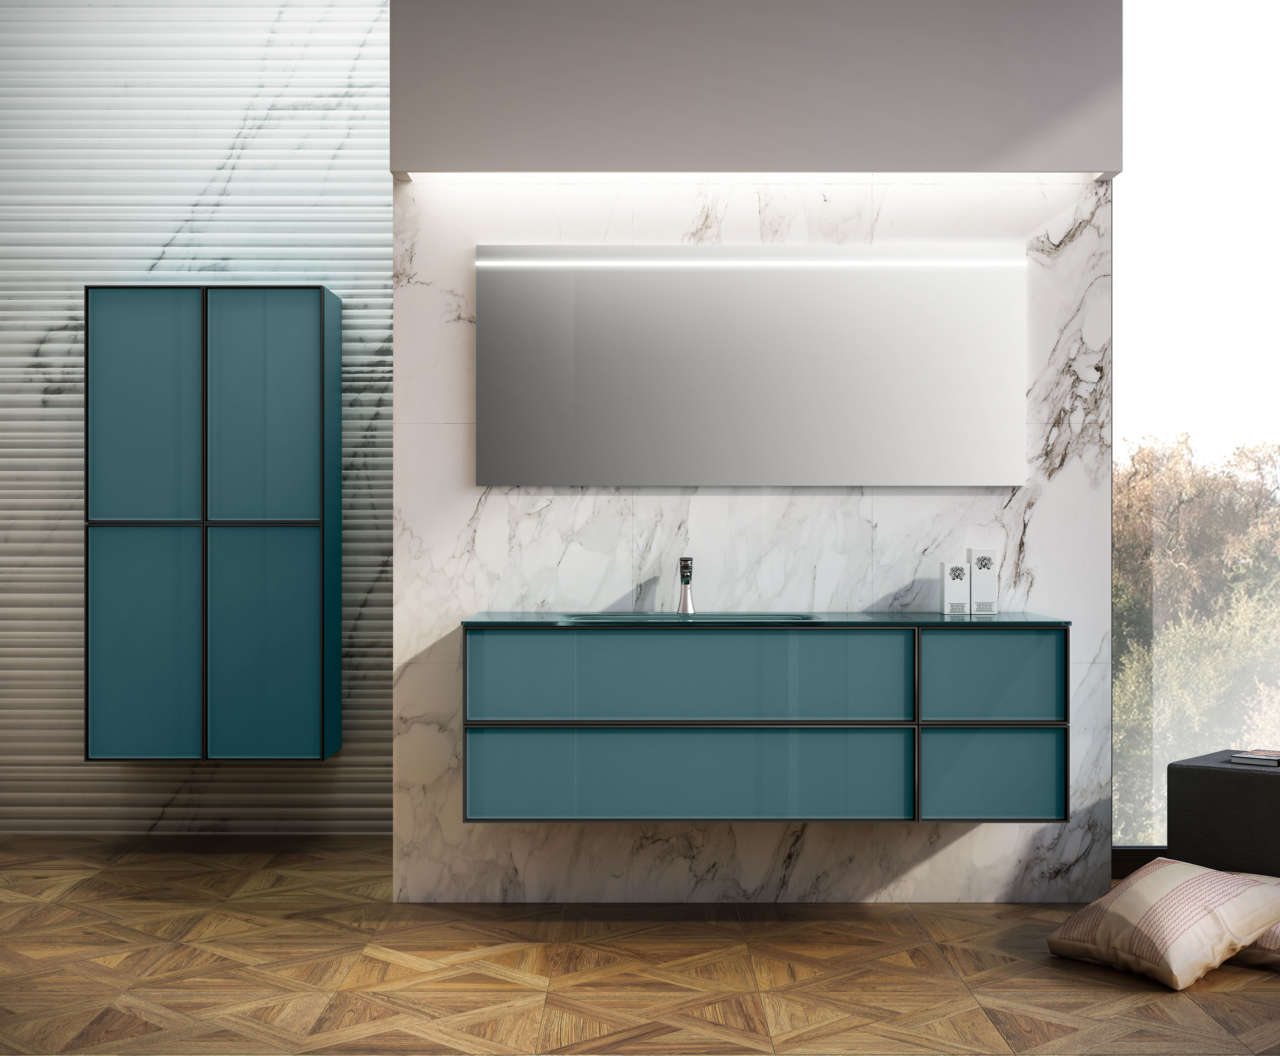 Gb Arredo Bagno.Nuova Linea Componibile Class By Gb Group Area